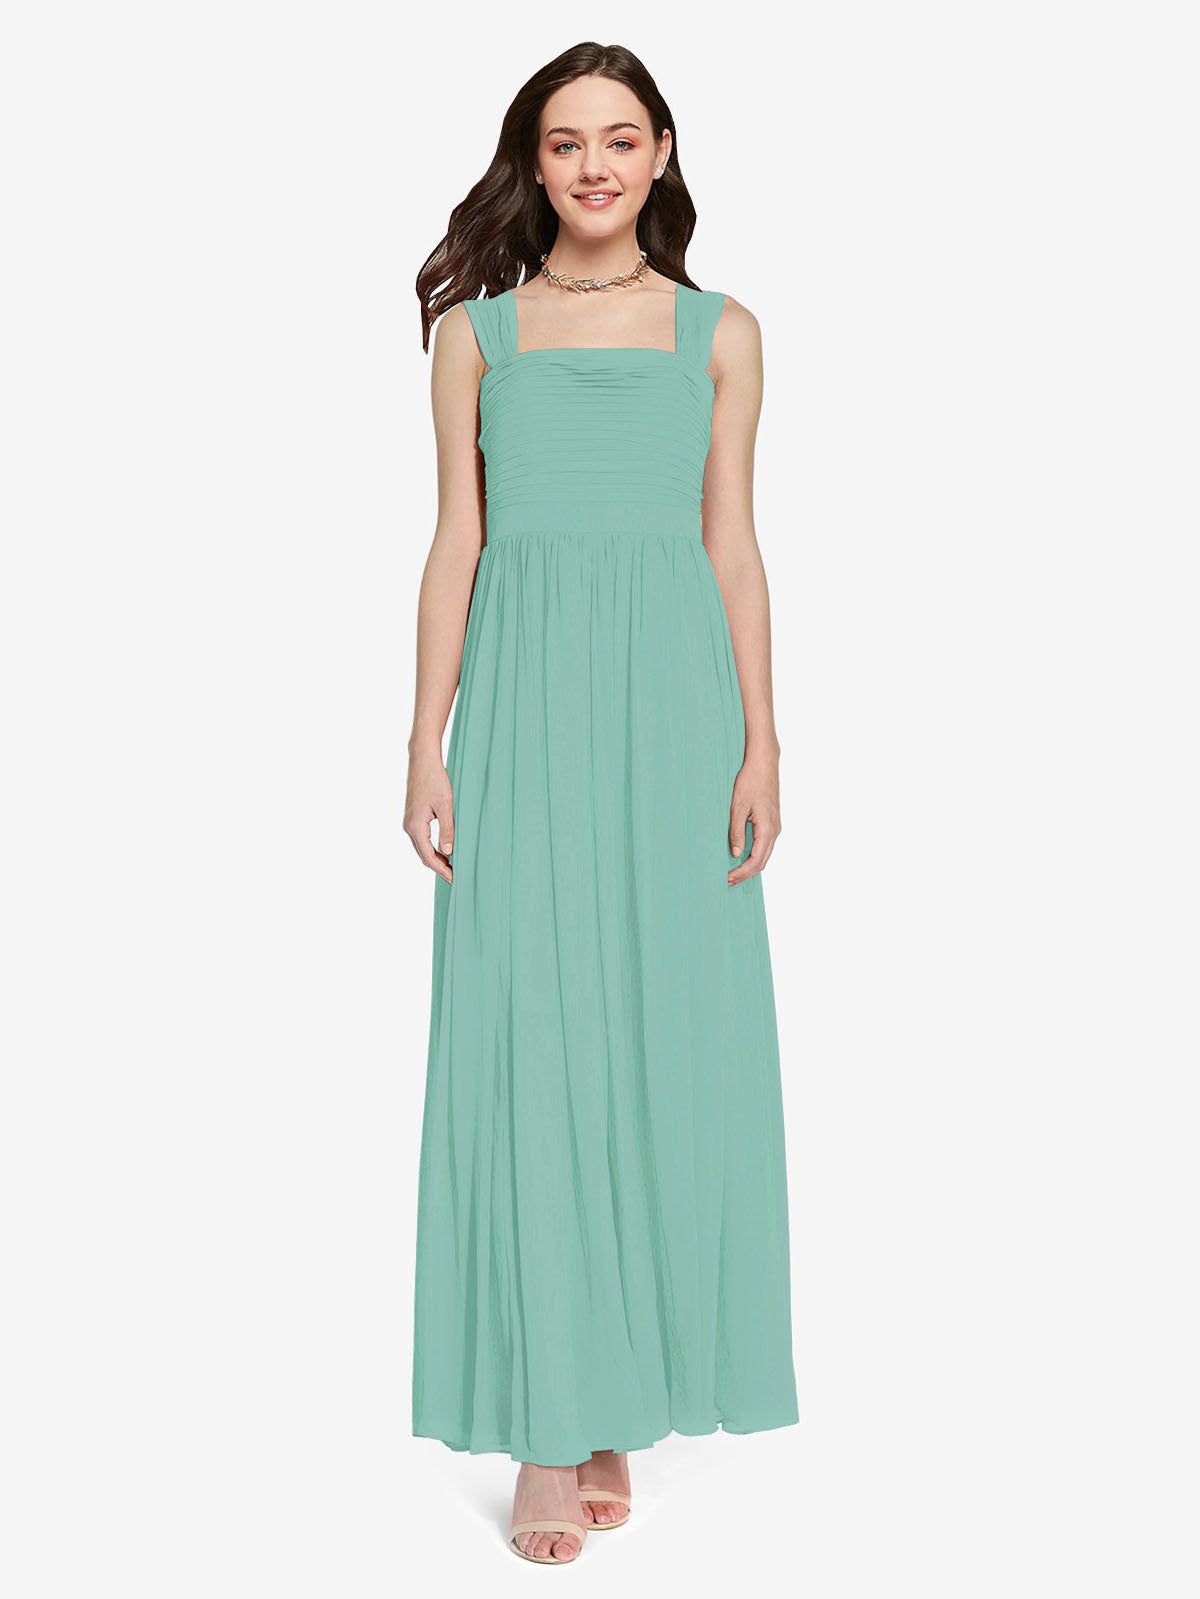 Long A-Line Square Sleeveless Jade Chiffon Bridesmaid Dress Aldridge